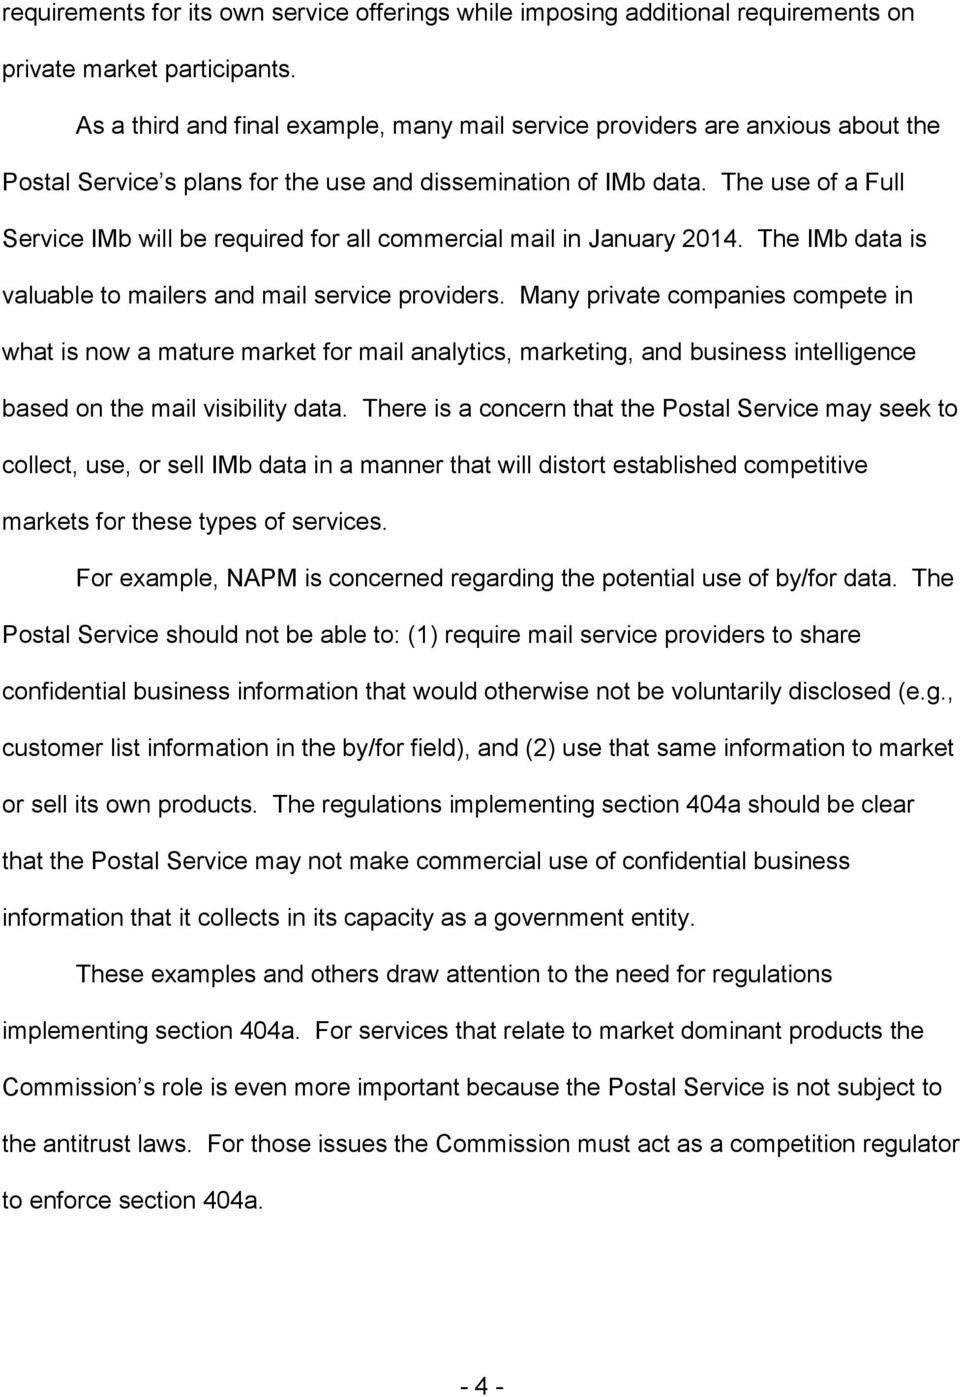 The use of a Full Service IMb will be required for all commercial mail in January 2014. The IMb data is valuable to mailers and mail service providers.